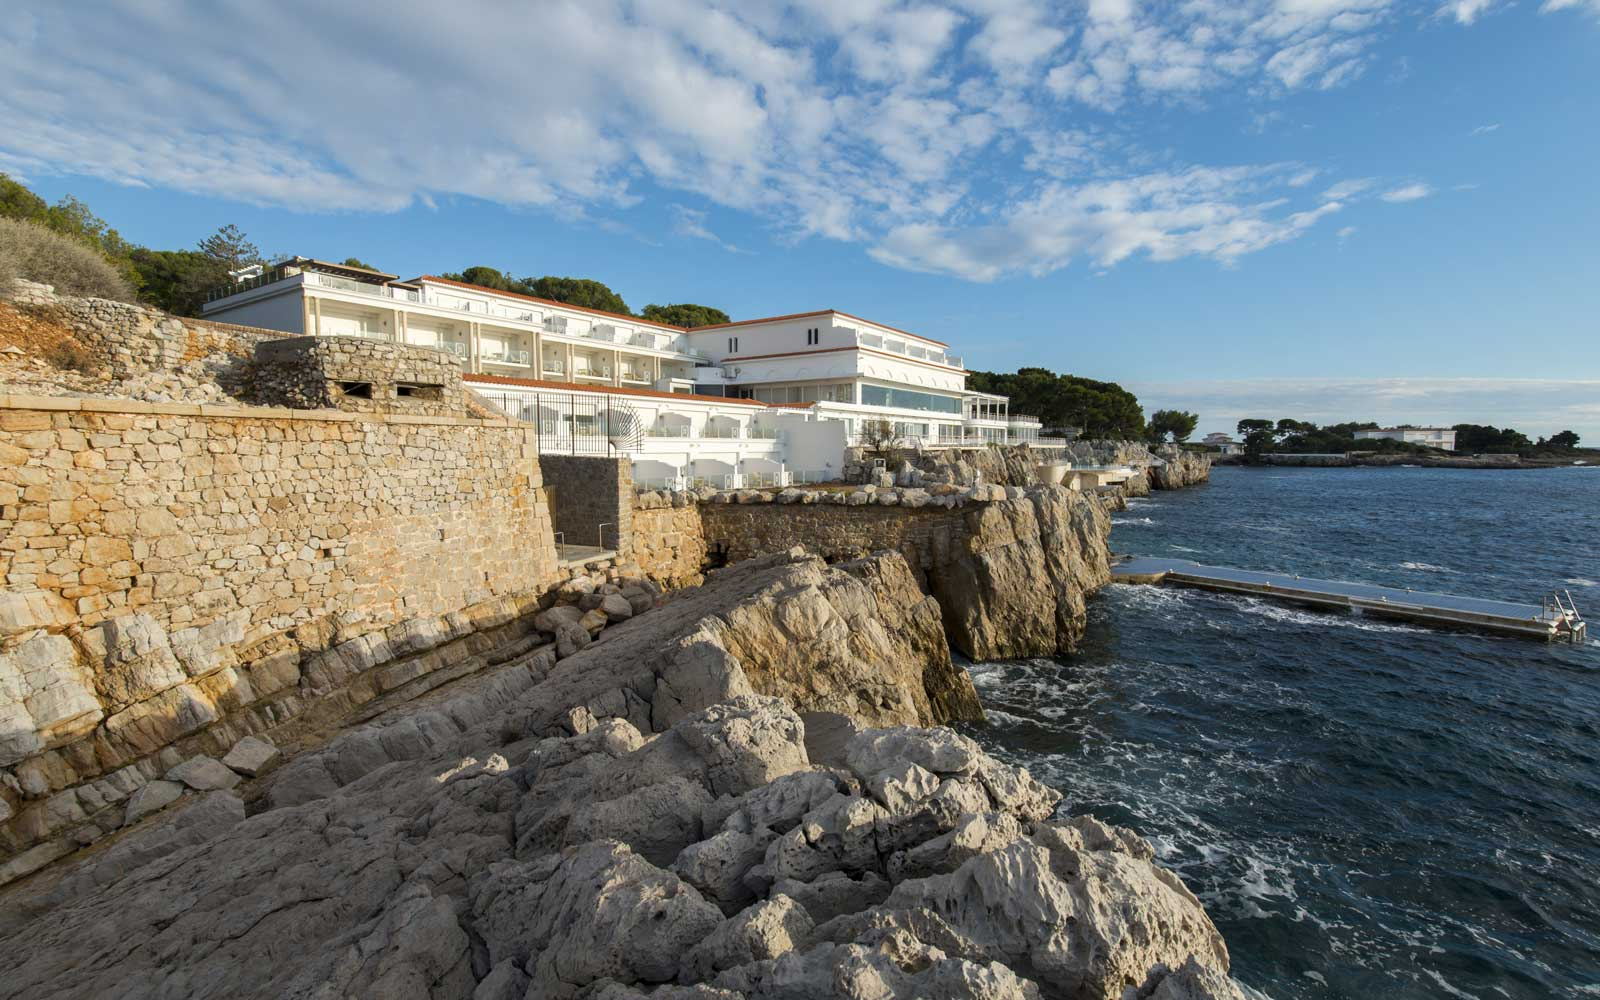 Exterior of the Hotel du Cap Eden Rock, in Antibes, France